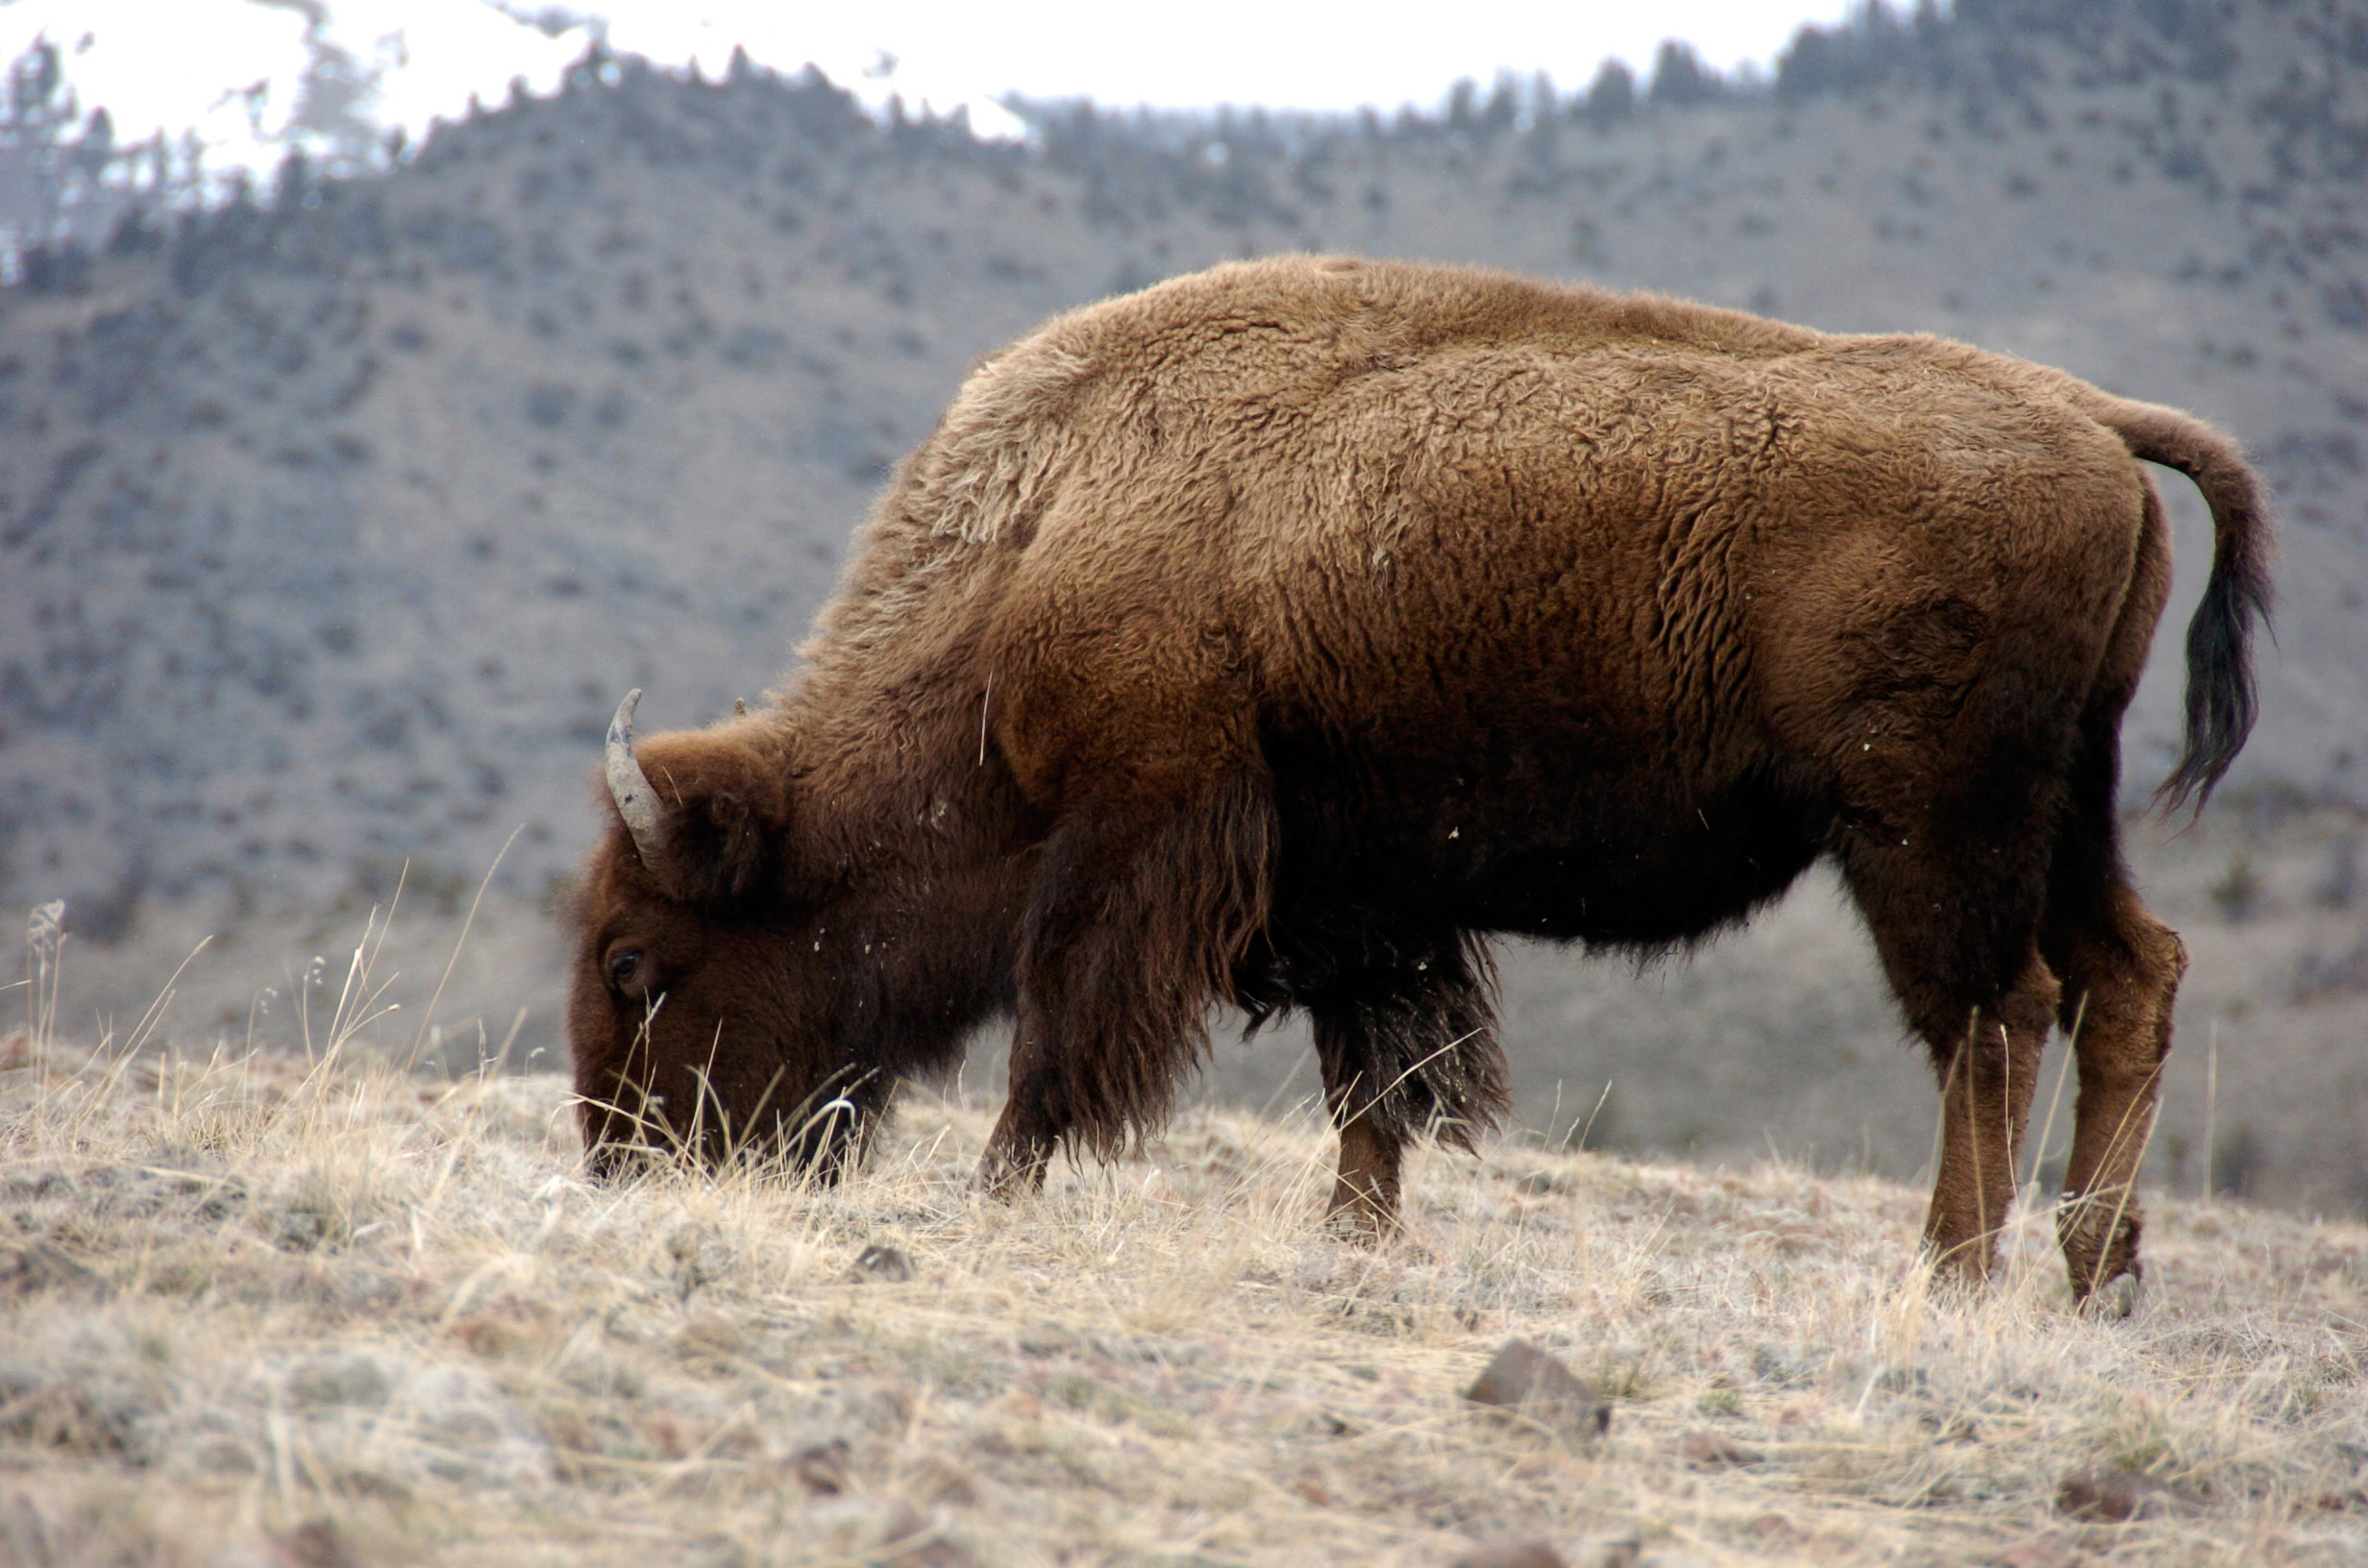 A bison grazes in Yellowstone National Park near Gardiner, Mont., on March 9, 2016.